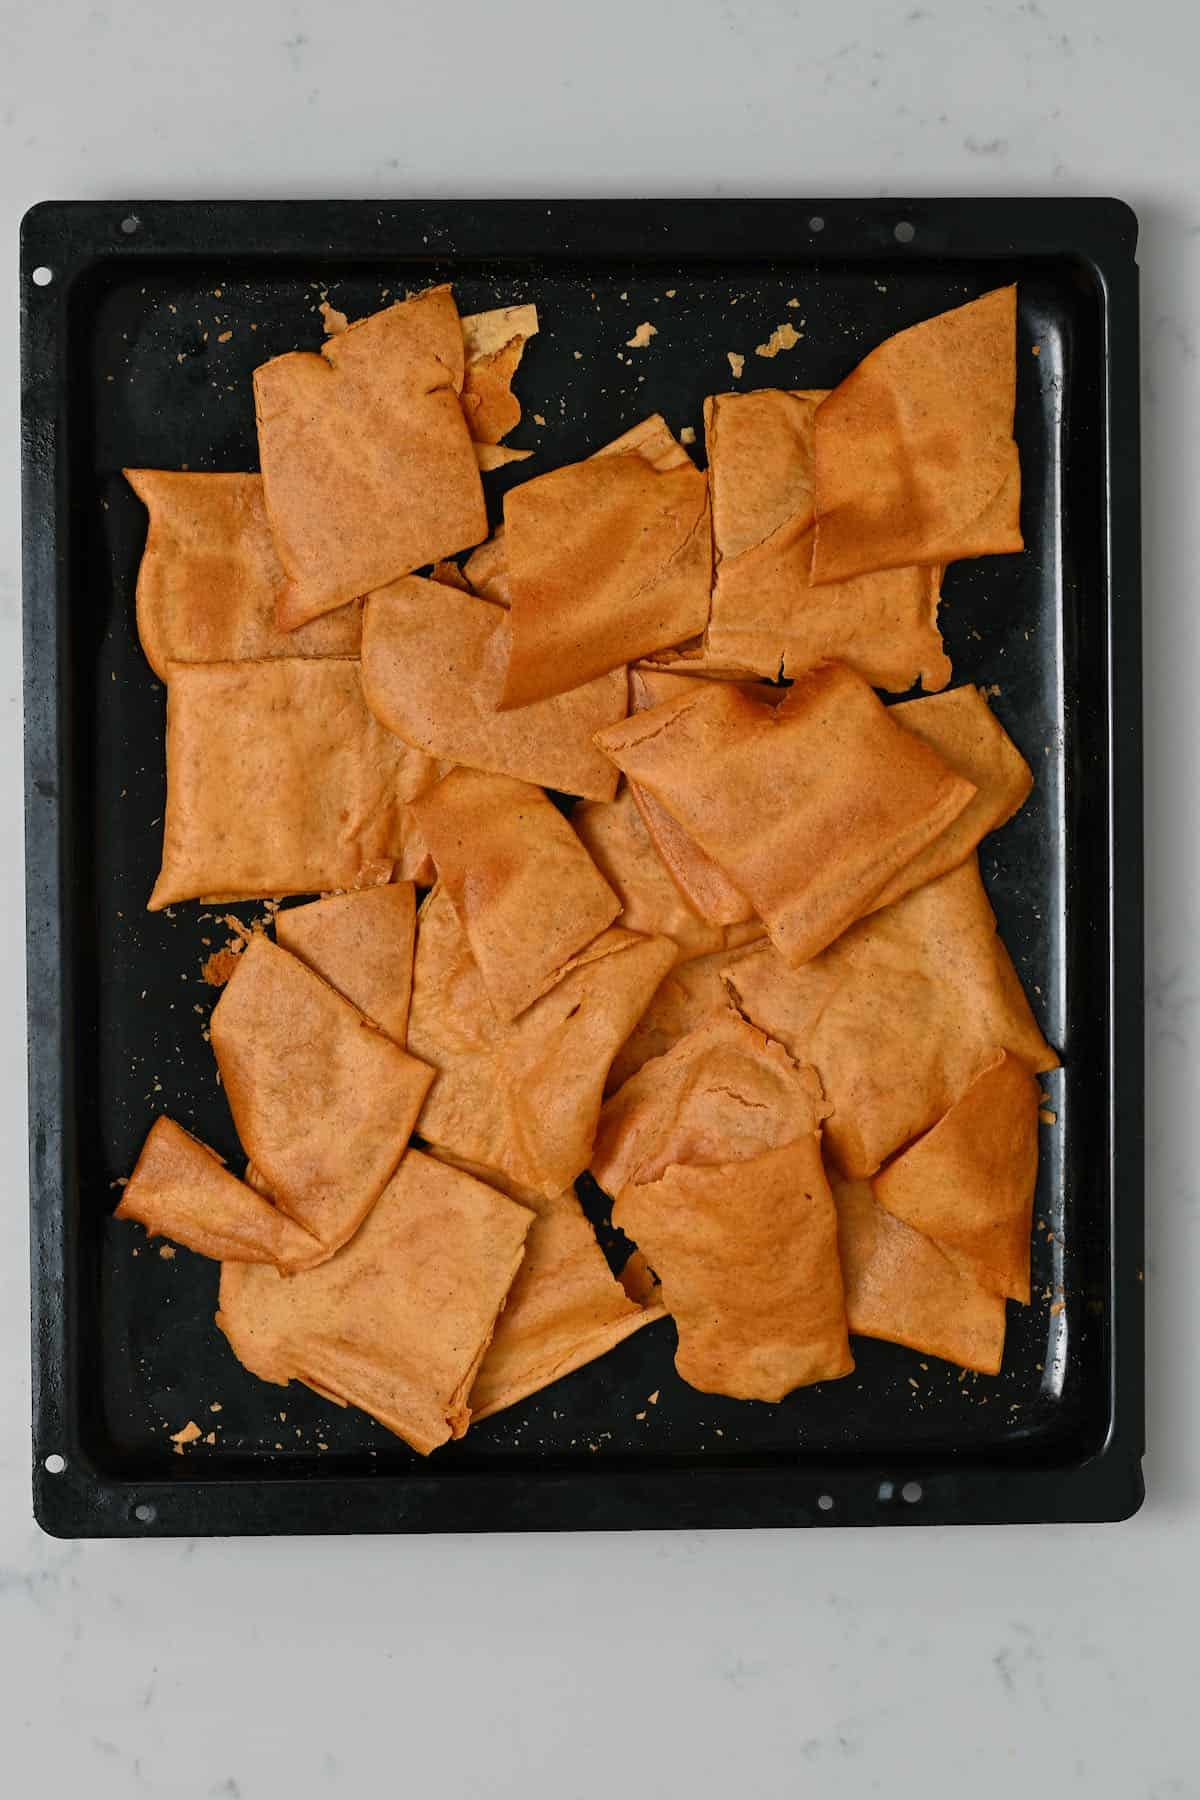 Cut crackers in a baking tray